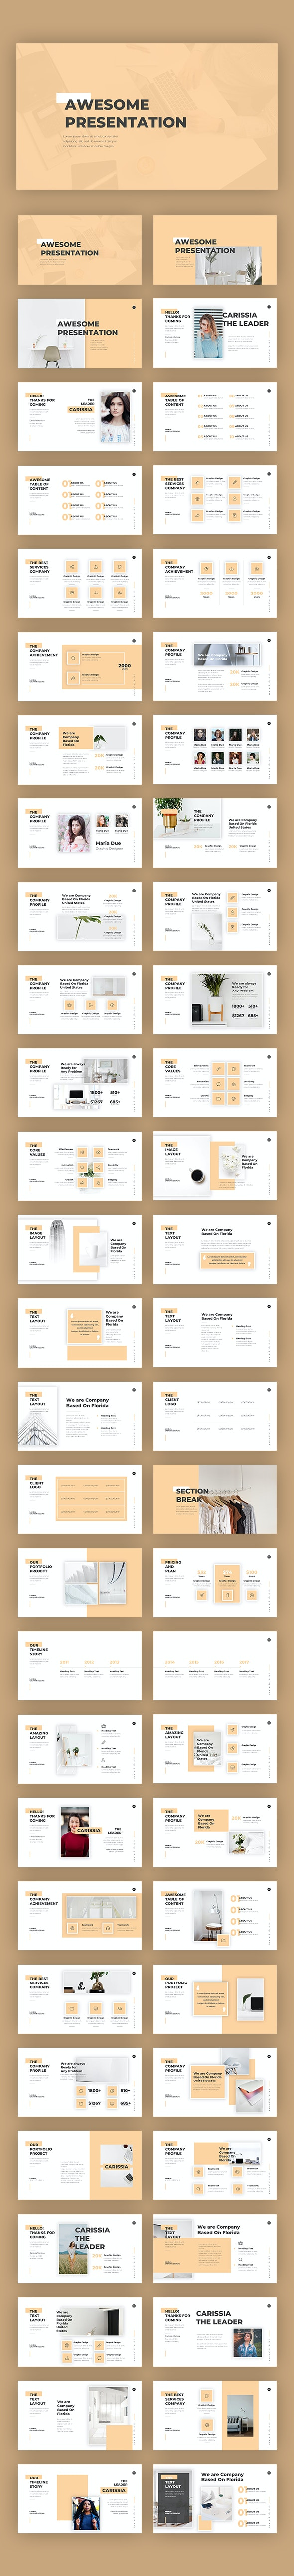 Awesome Pitch Deck Templates - PowerPoint Templates Presentation Templates